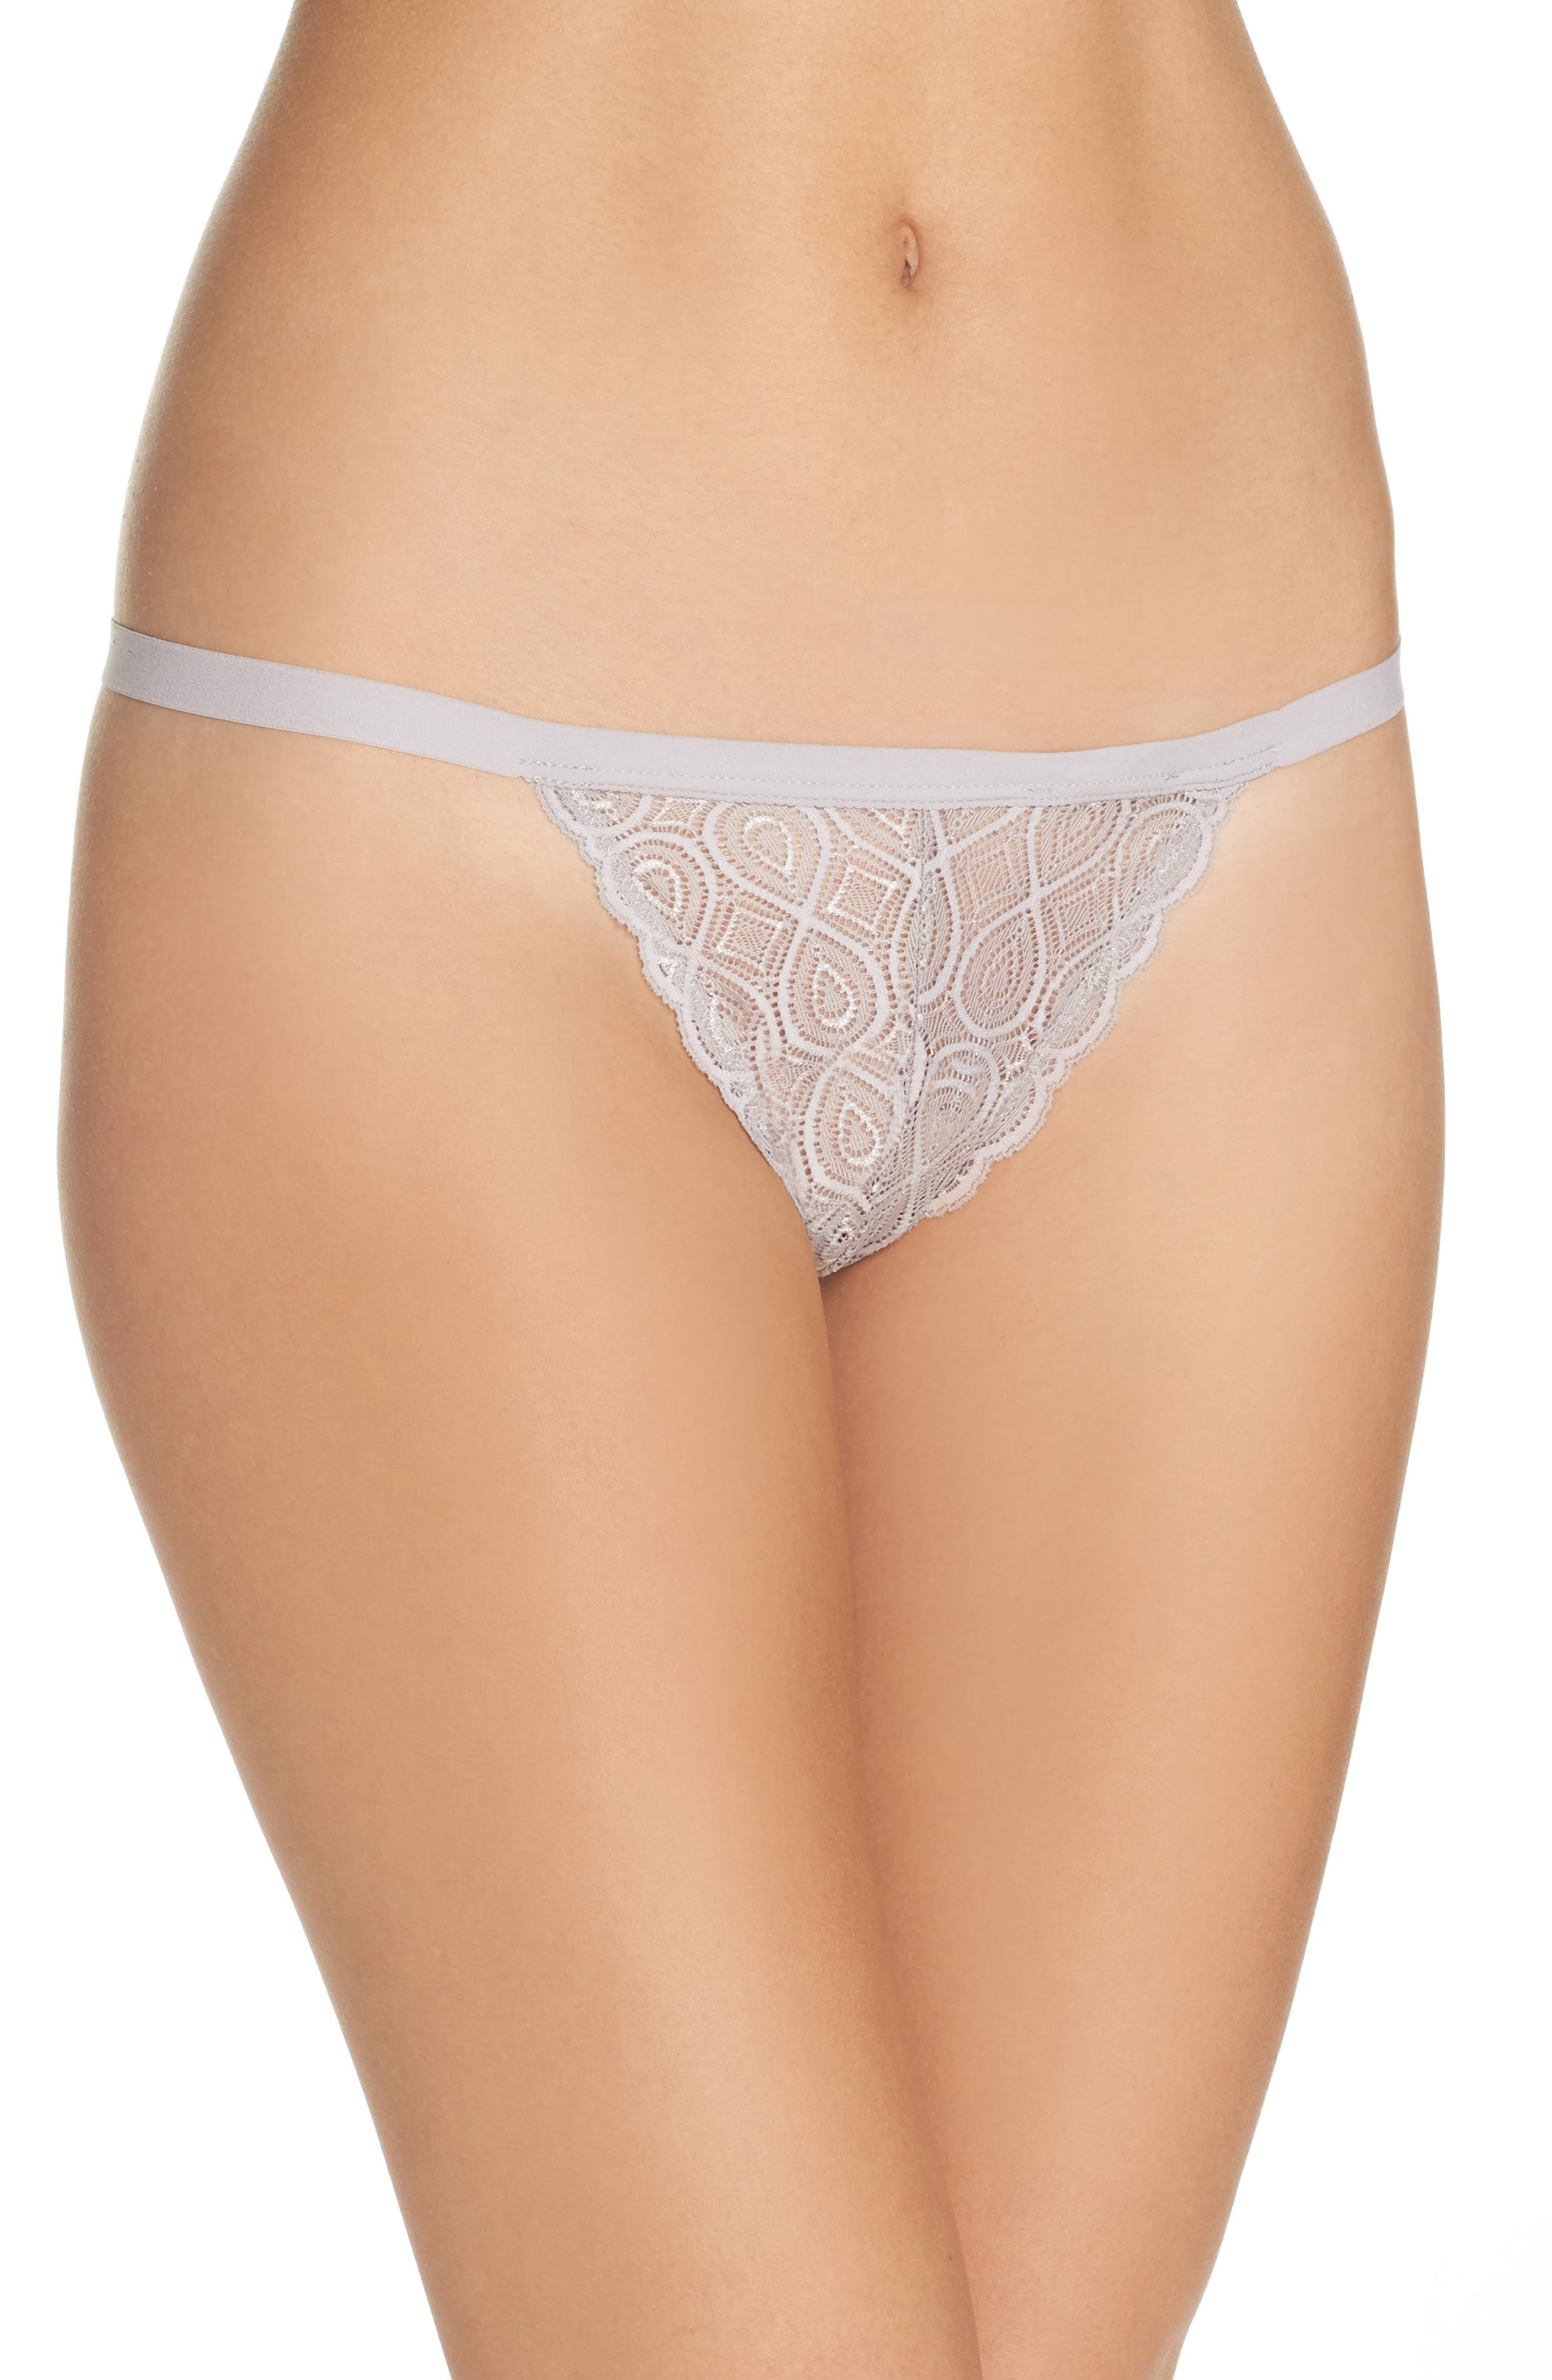 Cosabella Treats Infinity G-String Thong